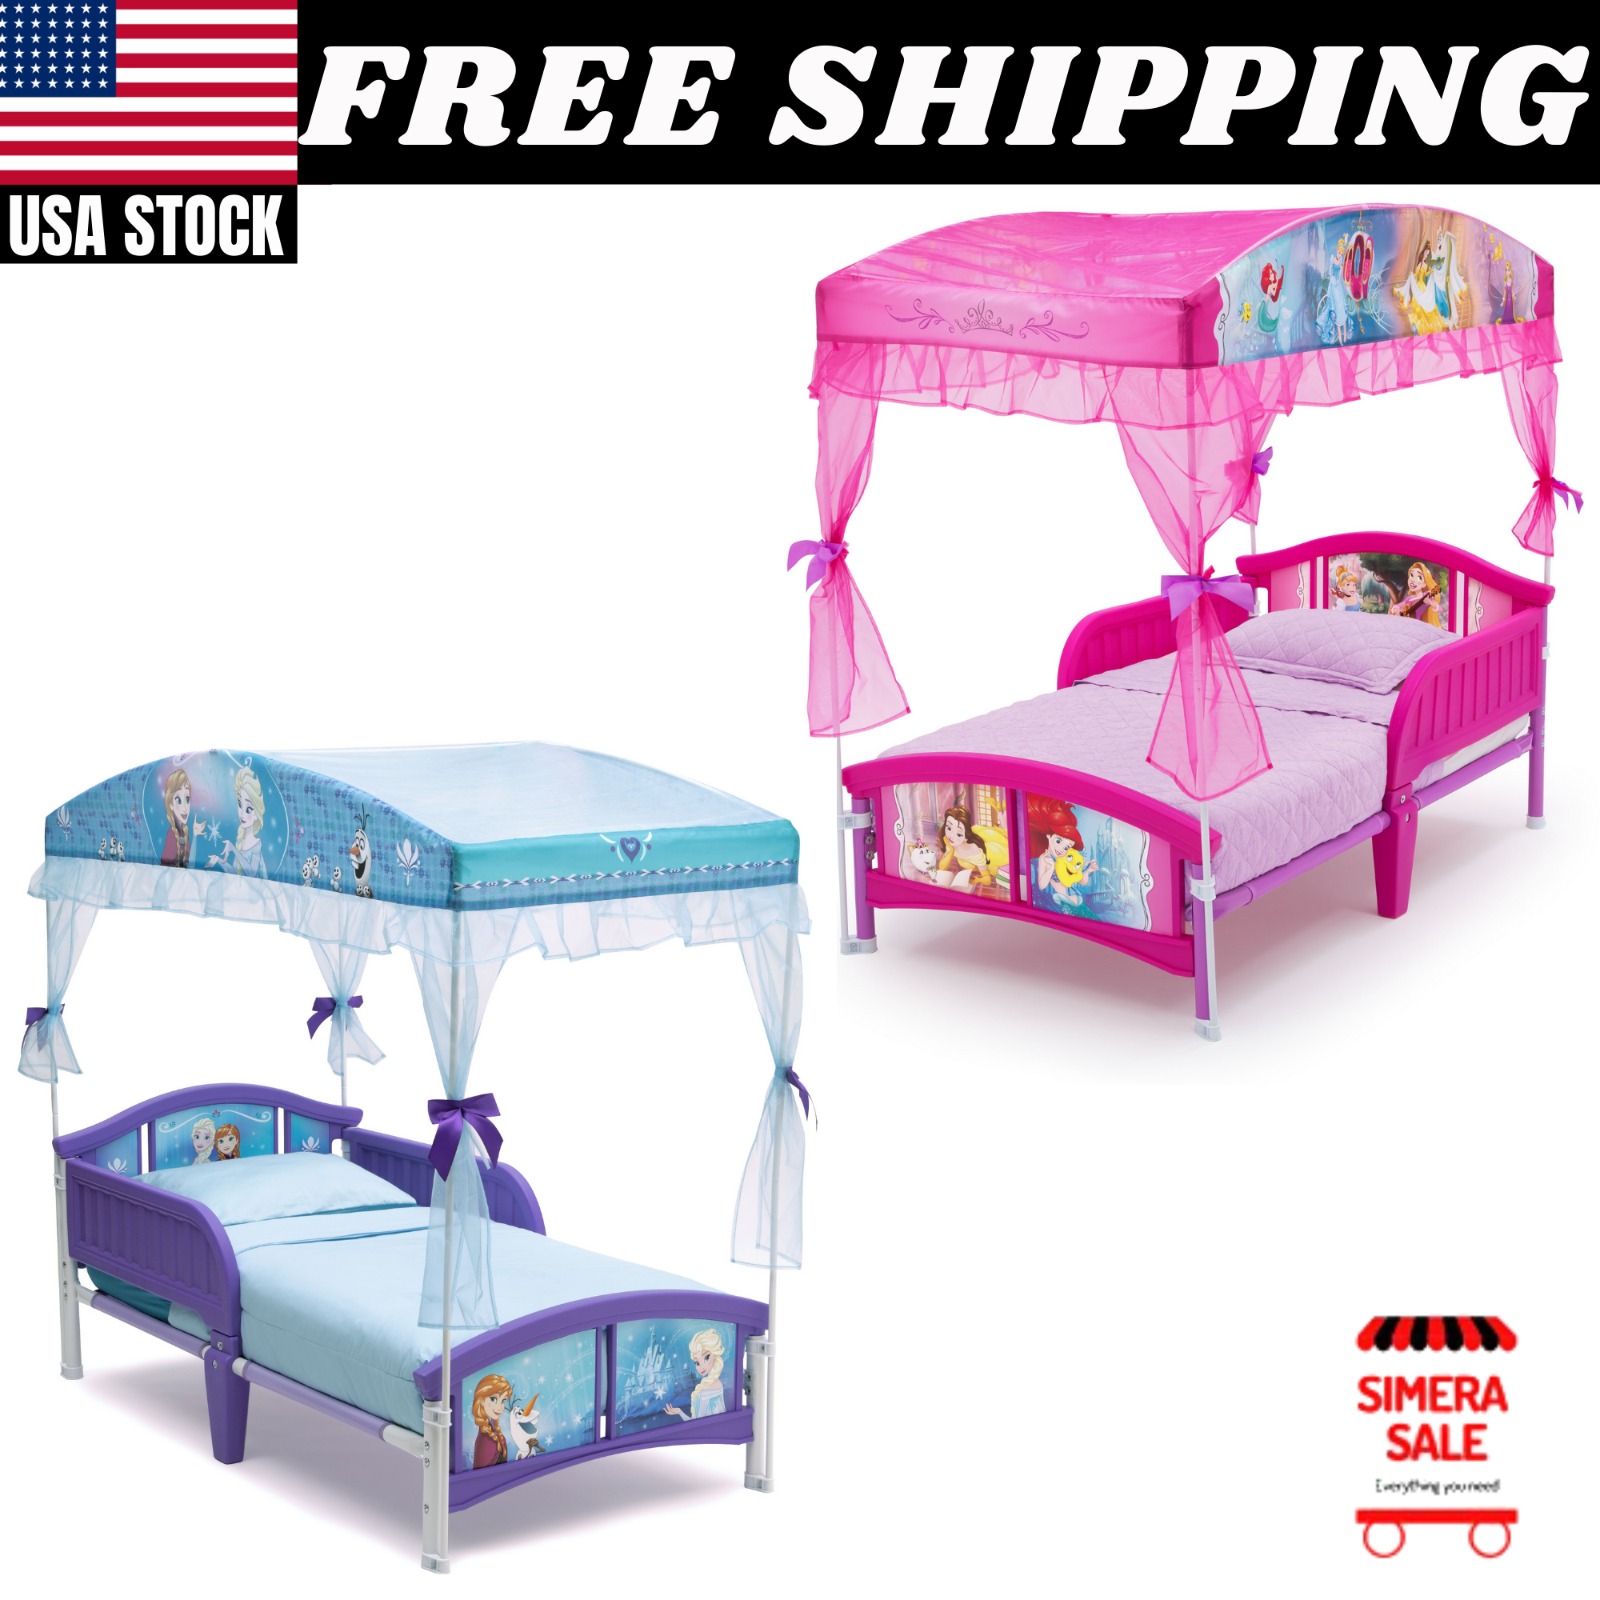 Factory Delta Children S Products Princess Canopy Toddler Bed Mattress For Sale Online Ebay